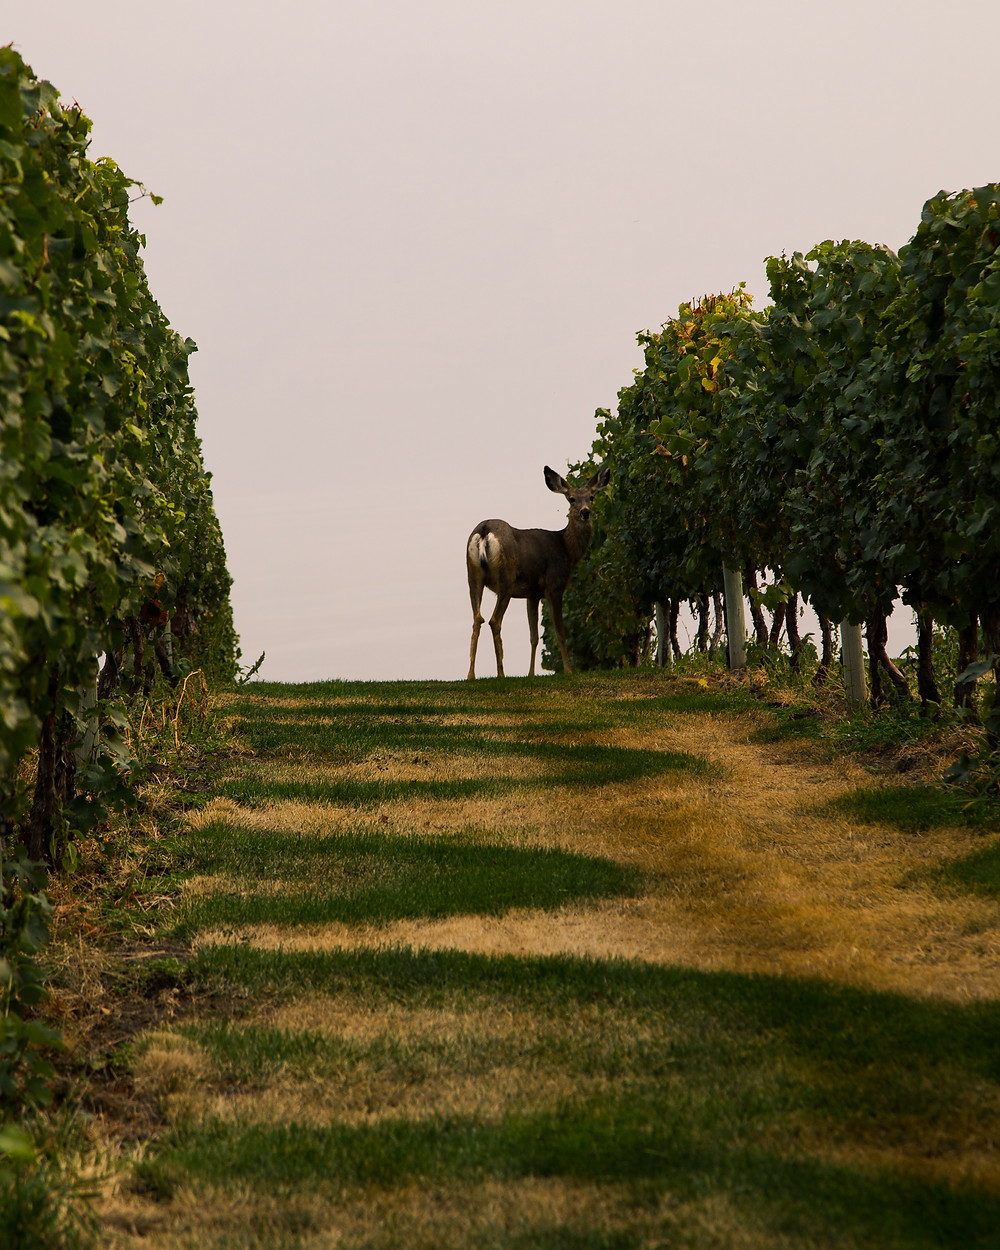 Deer in Mission Hill Winery Vineyard, BC